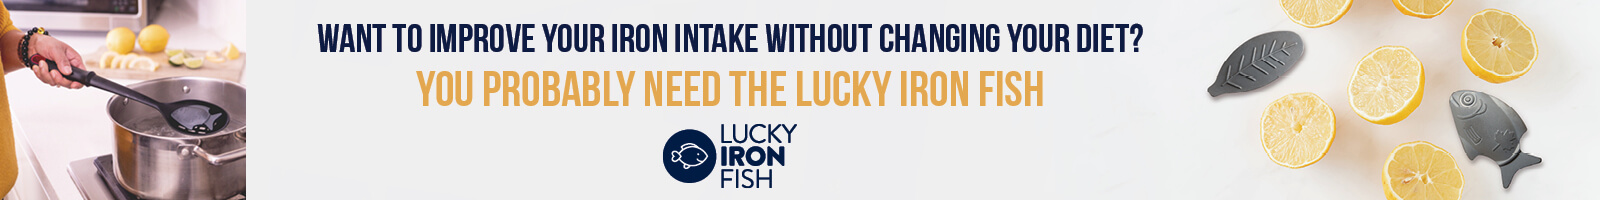 Lucky Iron Fish Banner